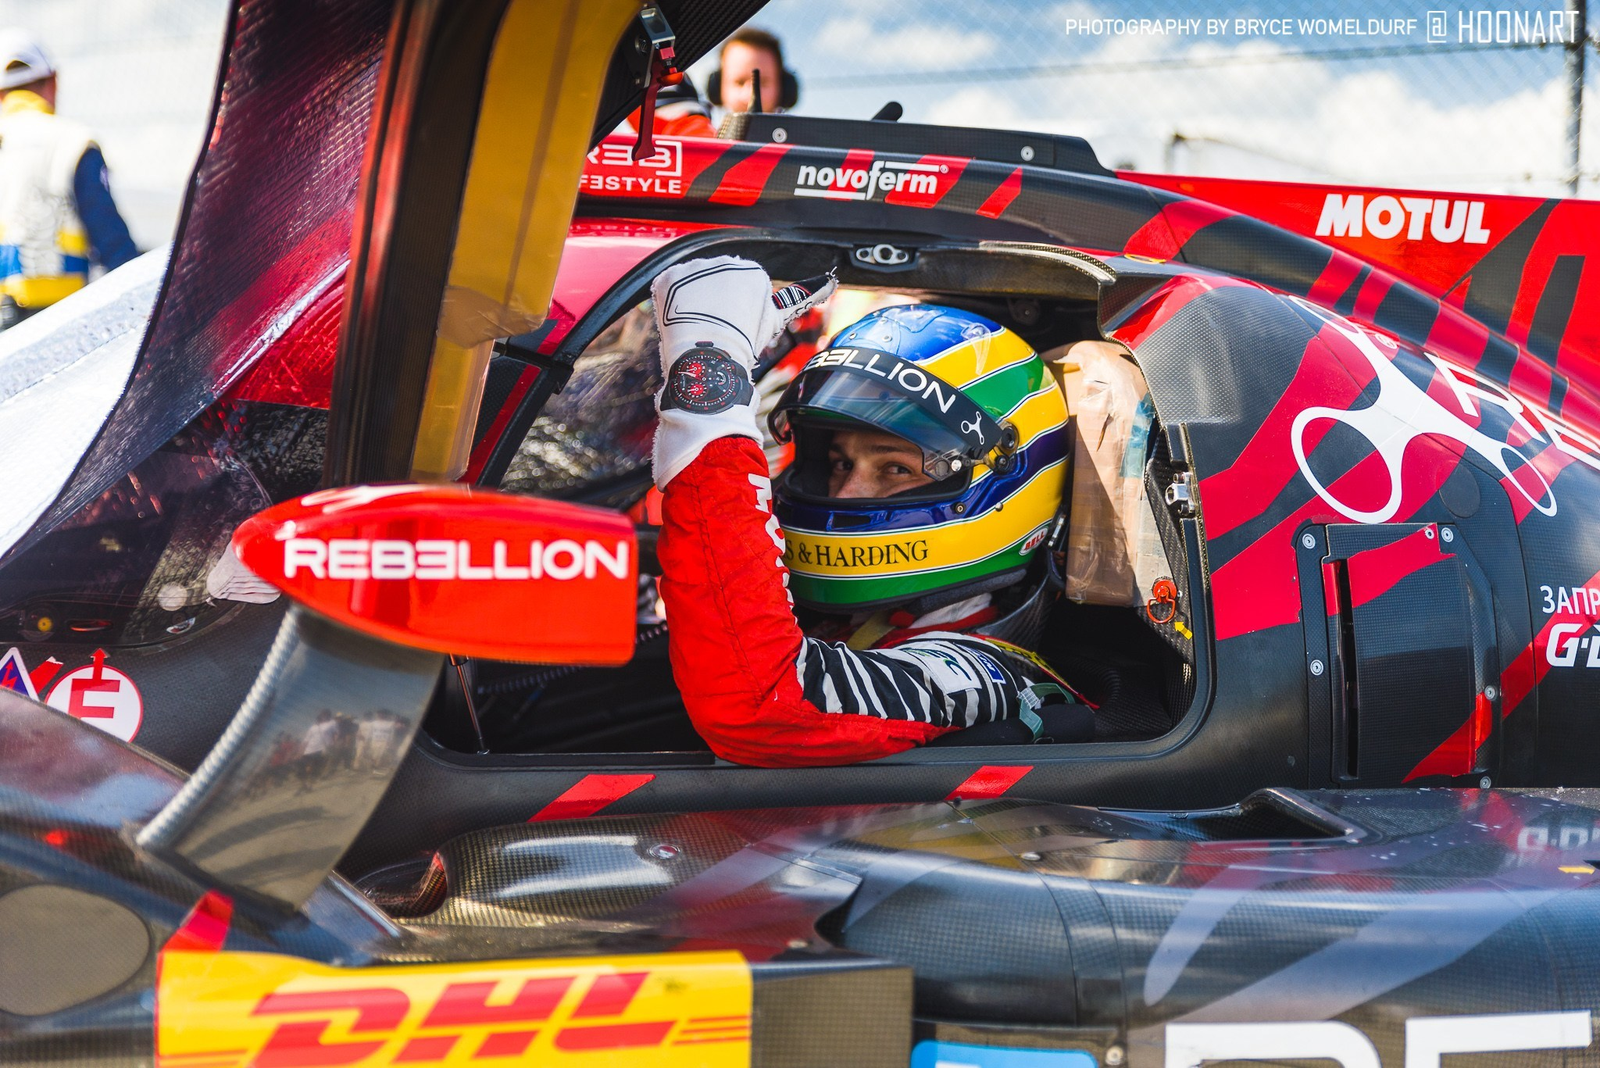 Bruno Senna of TVR Rebellion Racing gives a thumbs up as the grid closes just before the start of the 1000 Miles of Sebring.